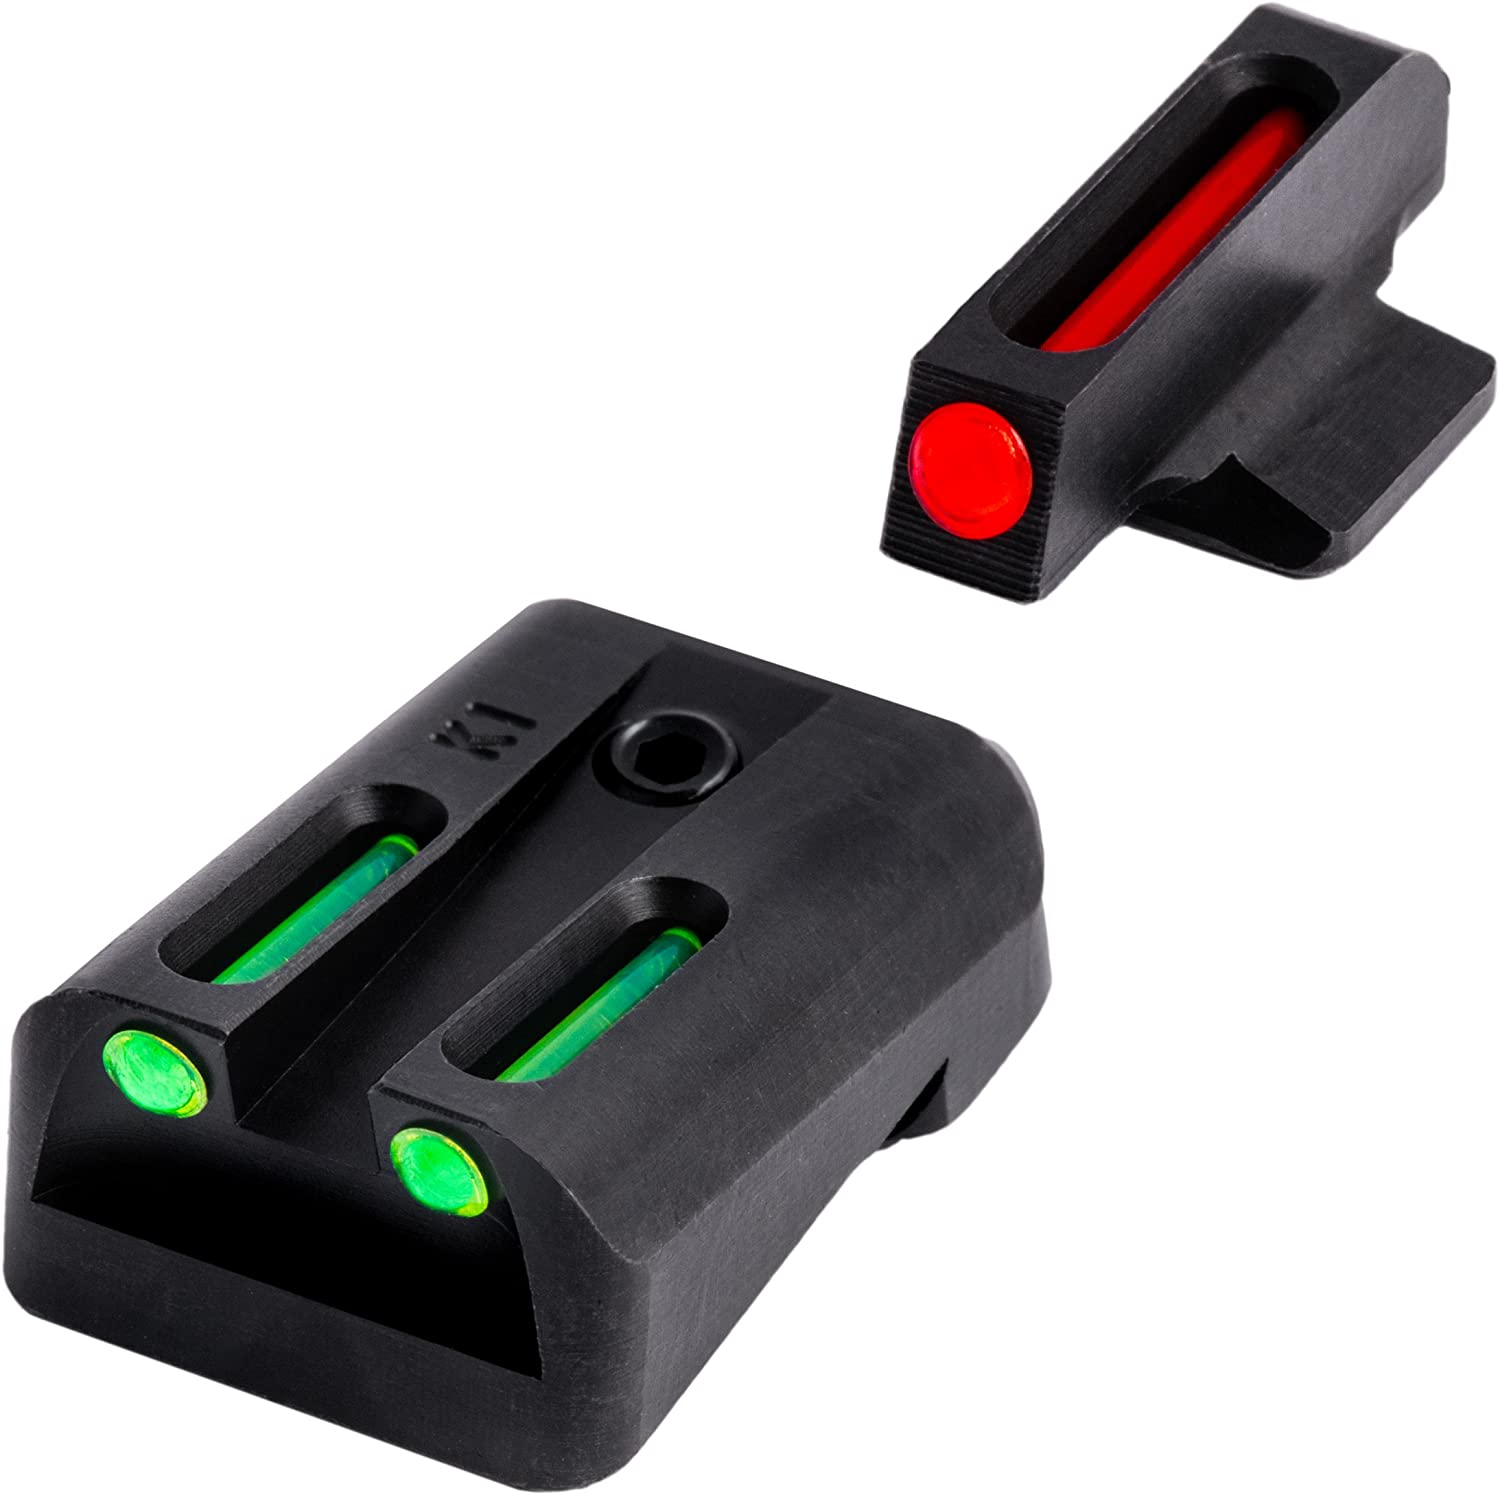 TRUGLO Fiber-Optic Front and Rear Handgun Sights for Kimber 1911 Models with Fixed Rear Sight